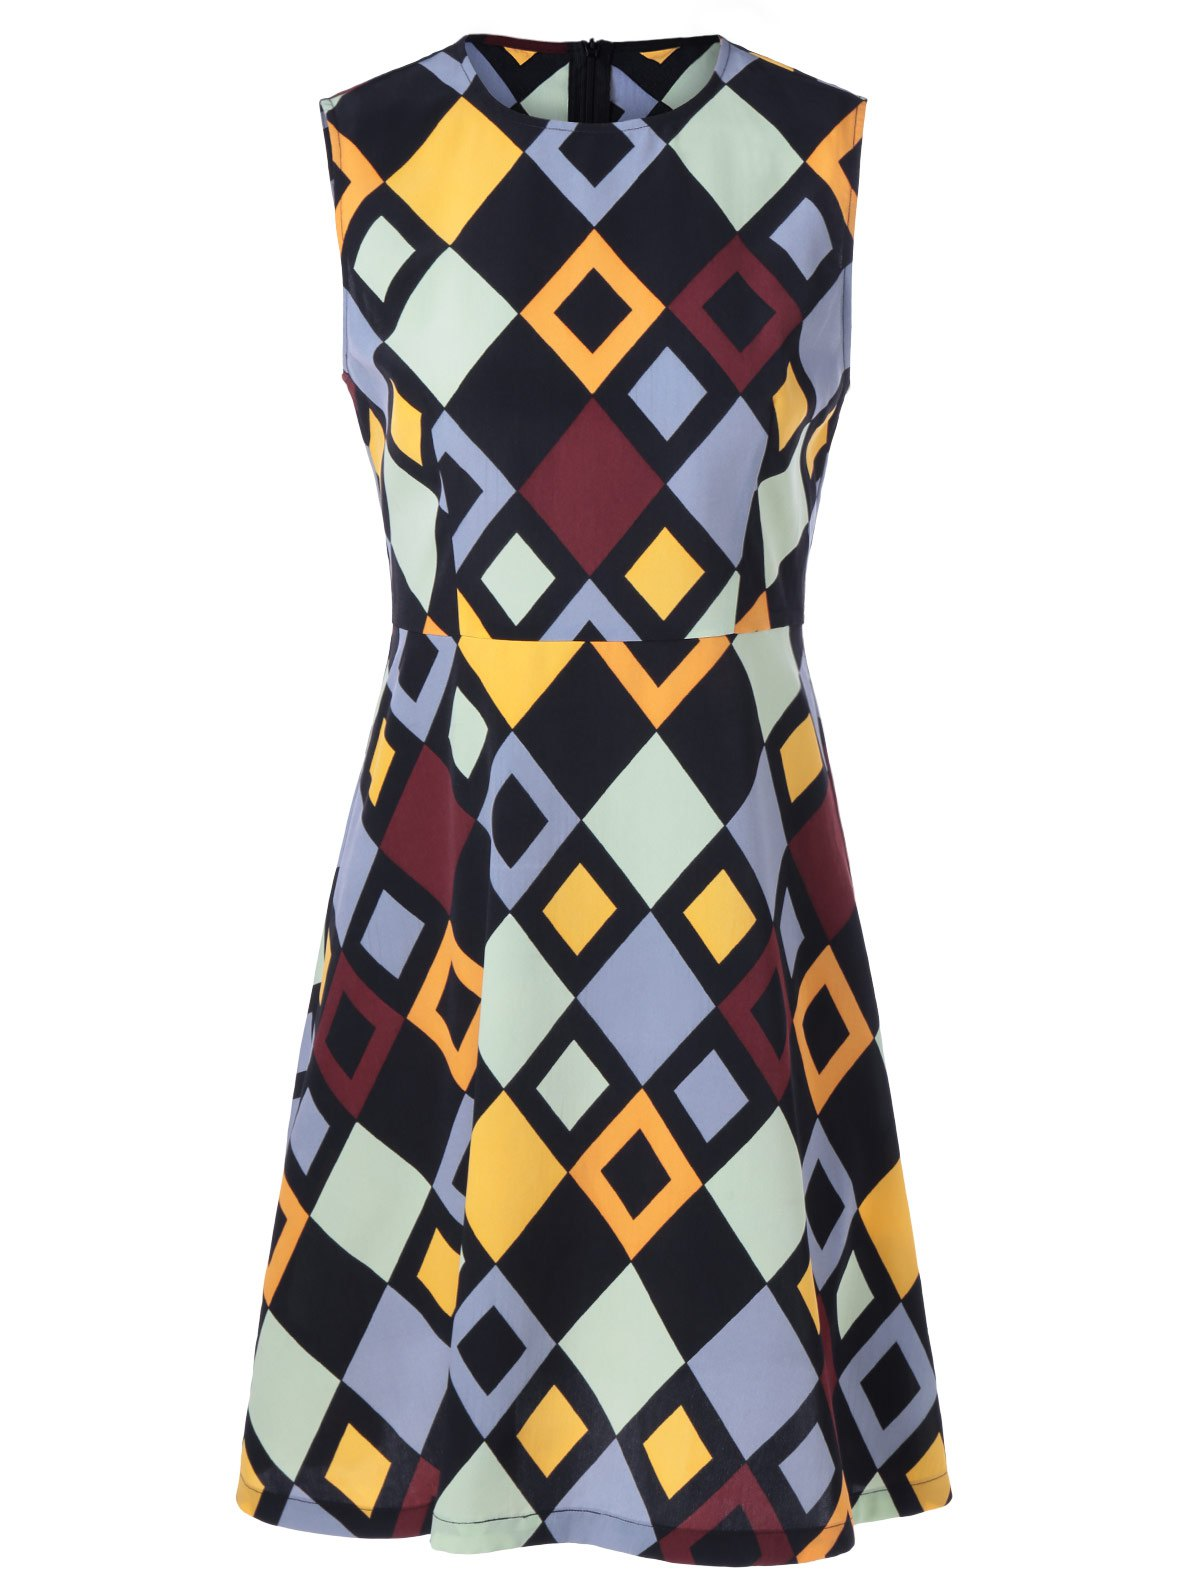 Fashionable Women's Fitted Round Neck Checkered Print Dress - COLORMIX XL